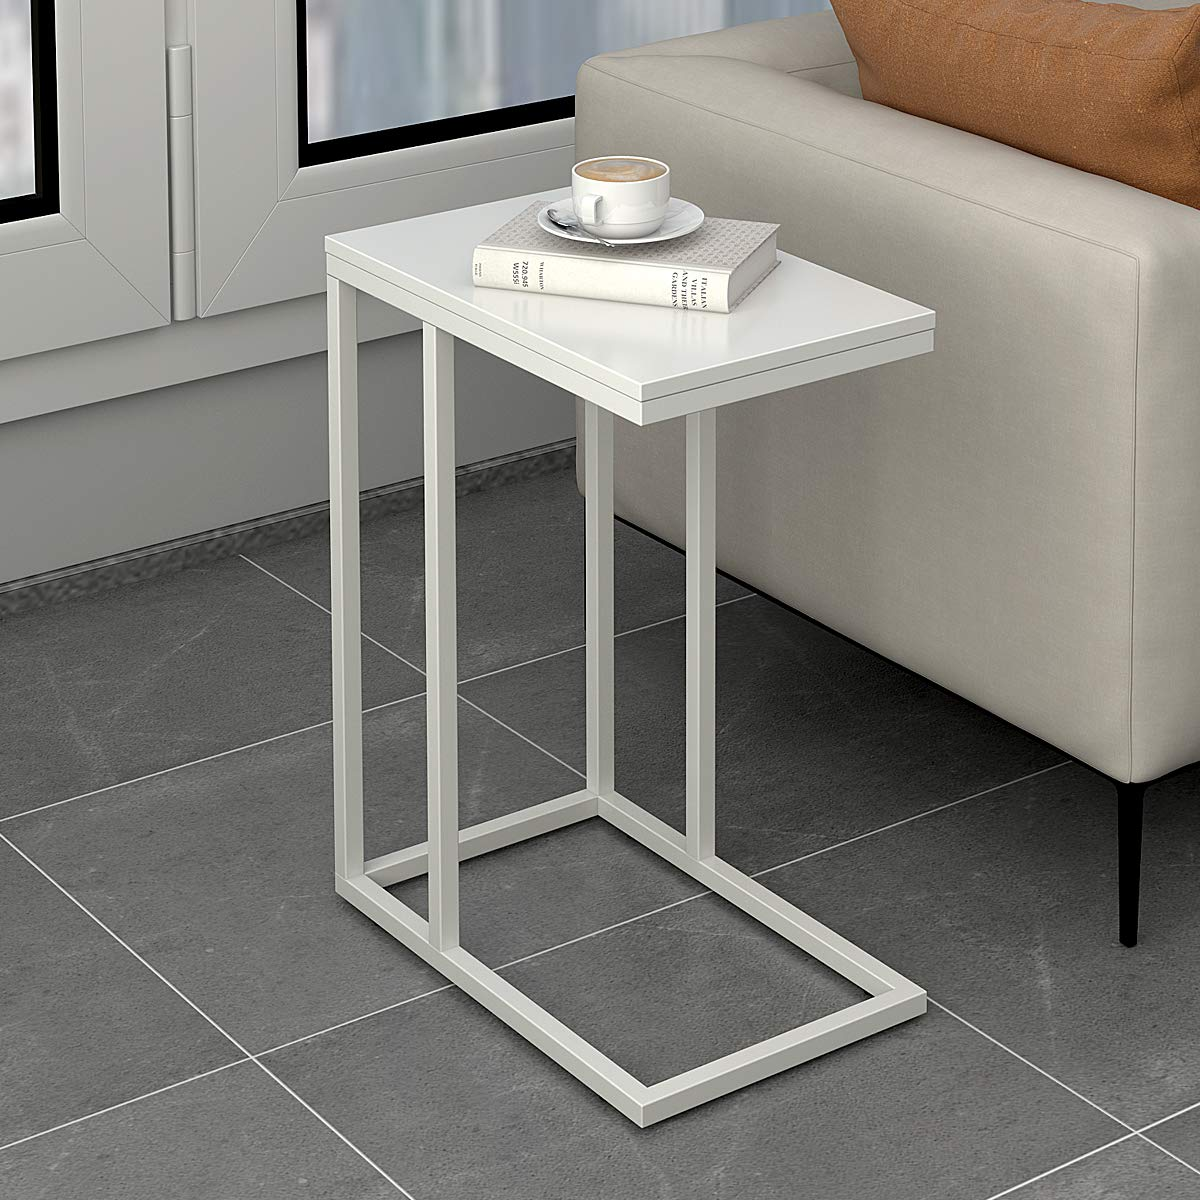 Amazon Com Wlive C Shaped Table End Table Sofa Side Table With